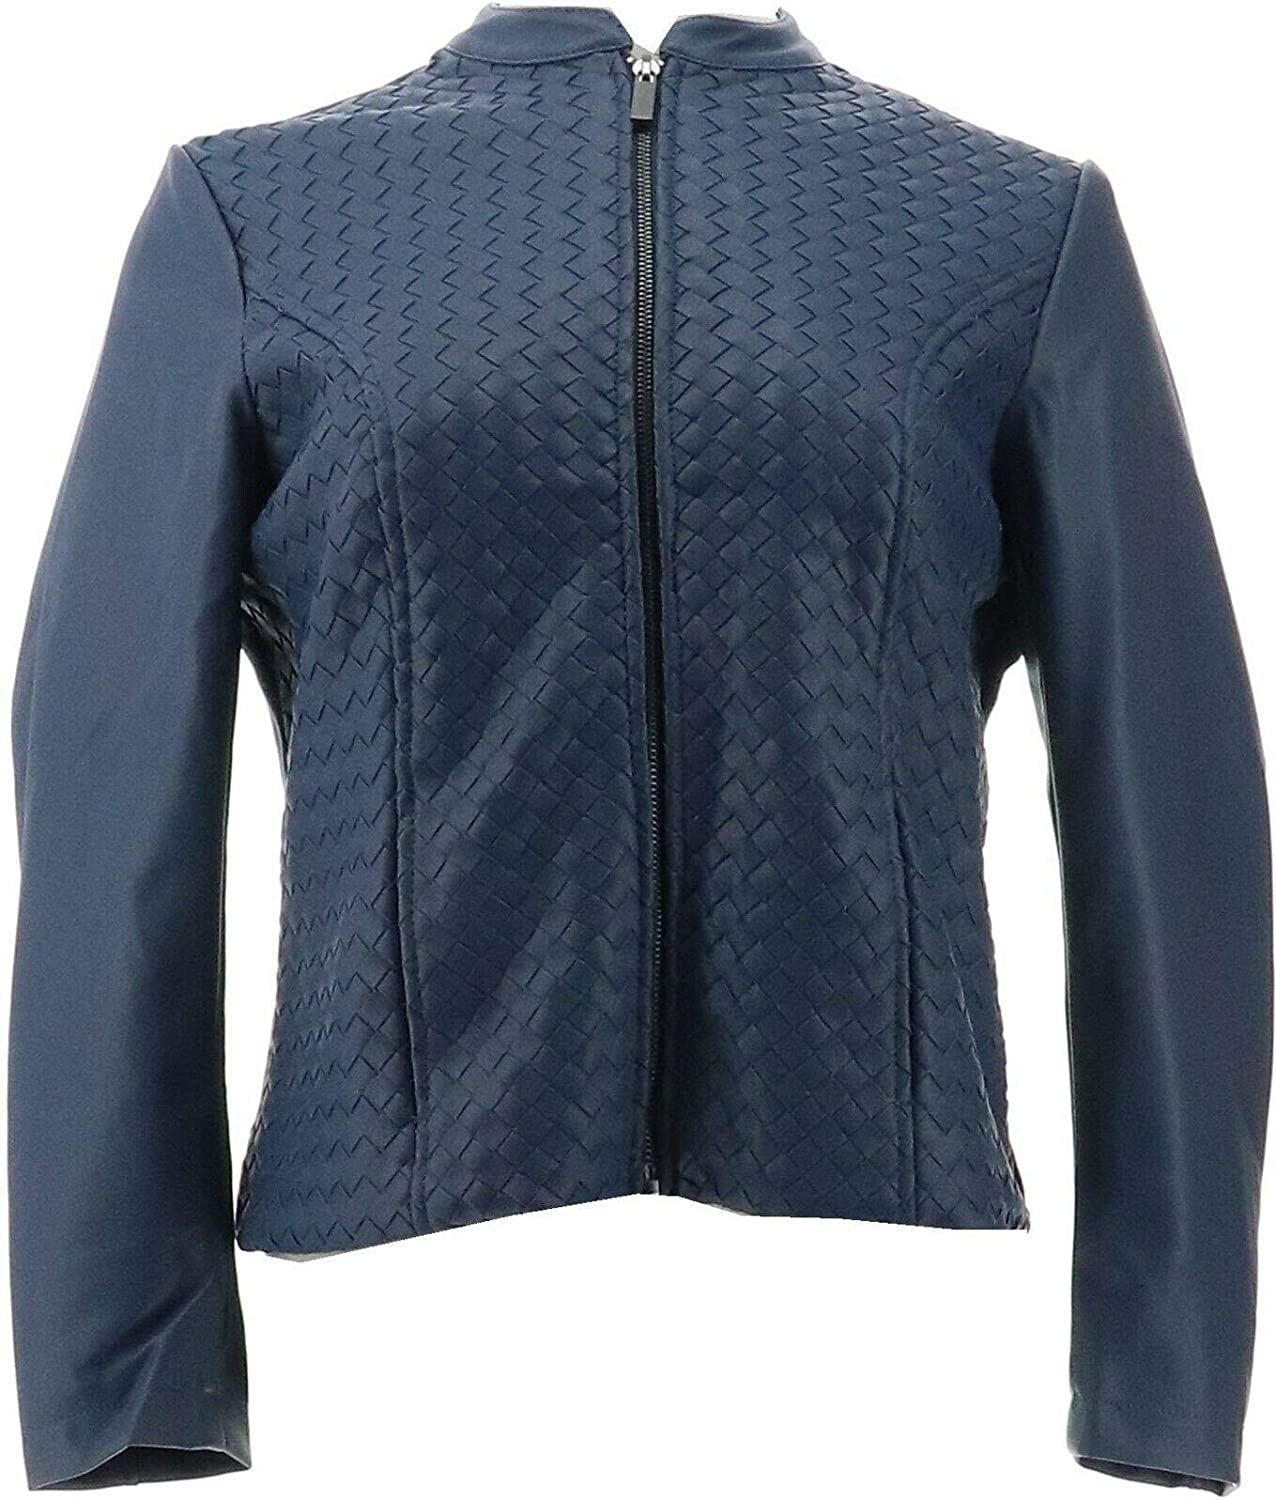 Colleen Lopez Faux Leather Jacket 612-213